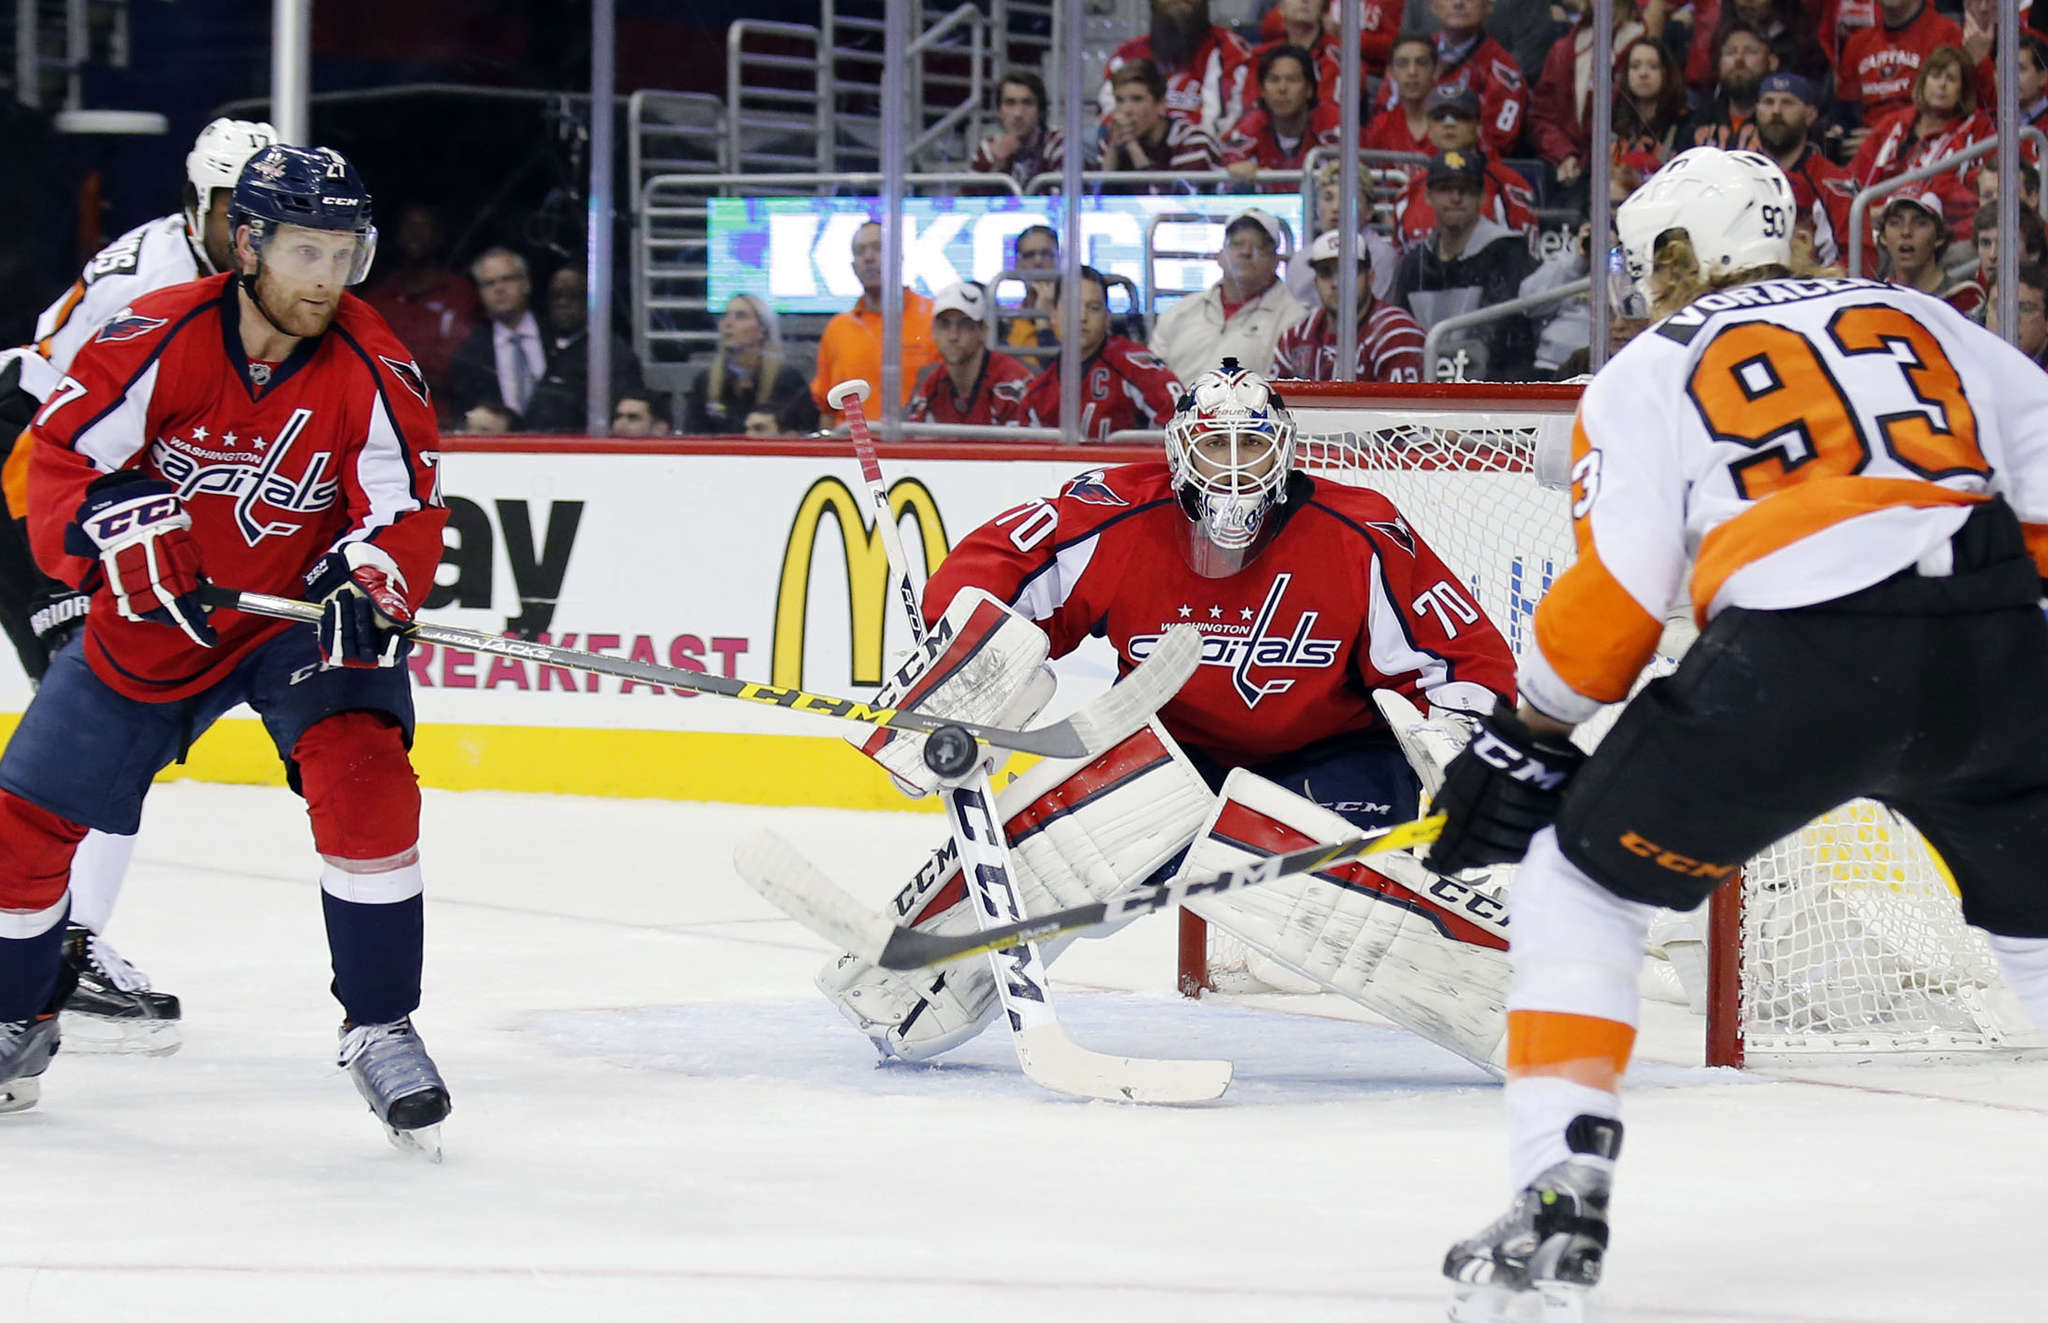 Jake Voracek´s shot is blocked by defenseman Karl Alzner before it reaches goaltender Braden Holtby. YONG KIM / Staff Photographer